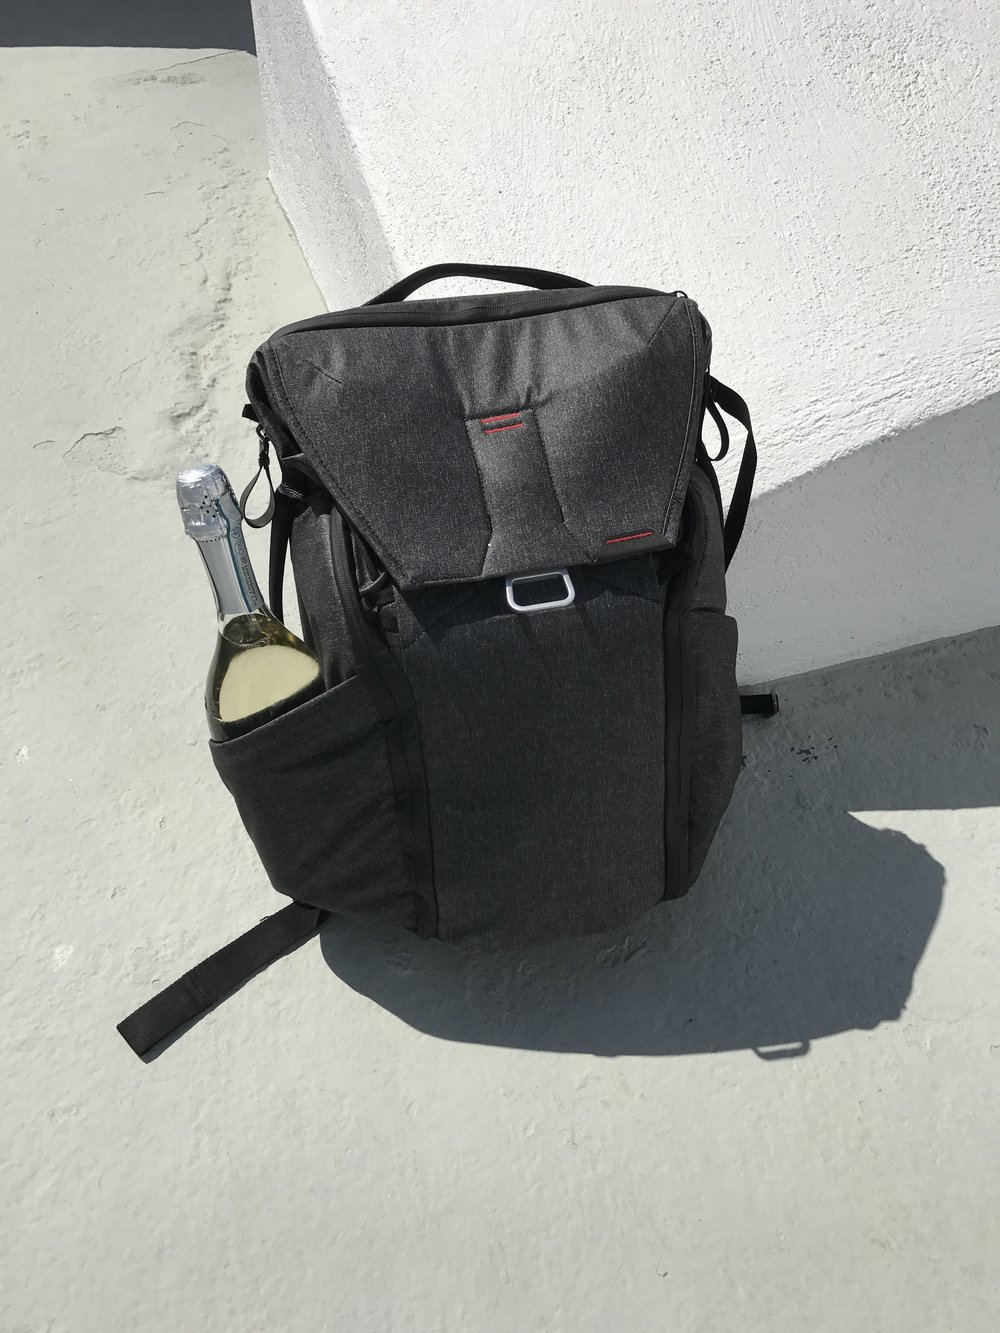 Prosecco in a Peak Design Everyday Backpack 8408.JPG